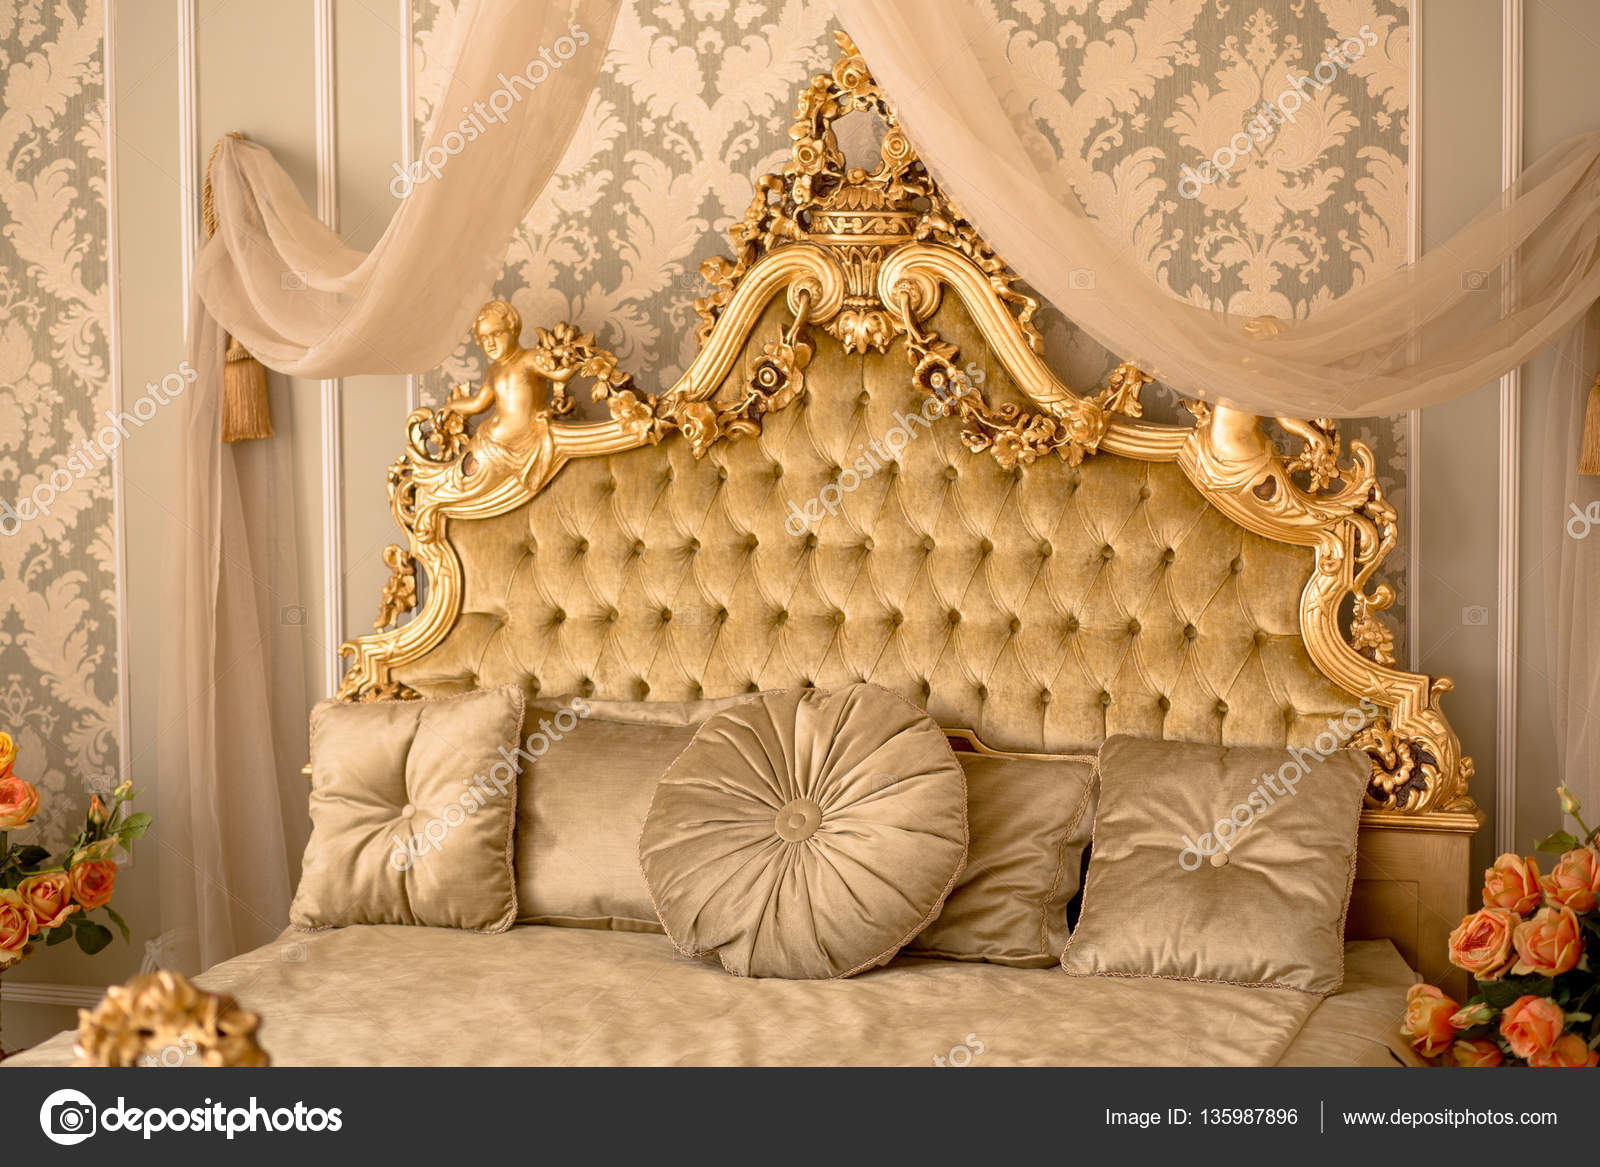 Awesome images de chambre a coucher royal gallery for Photo de chambre a coucher